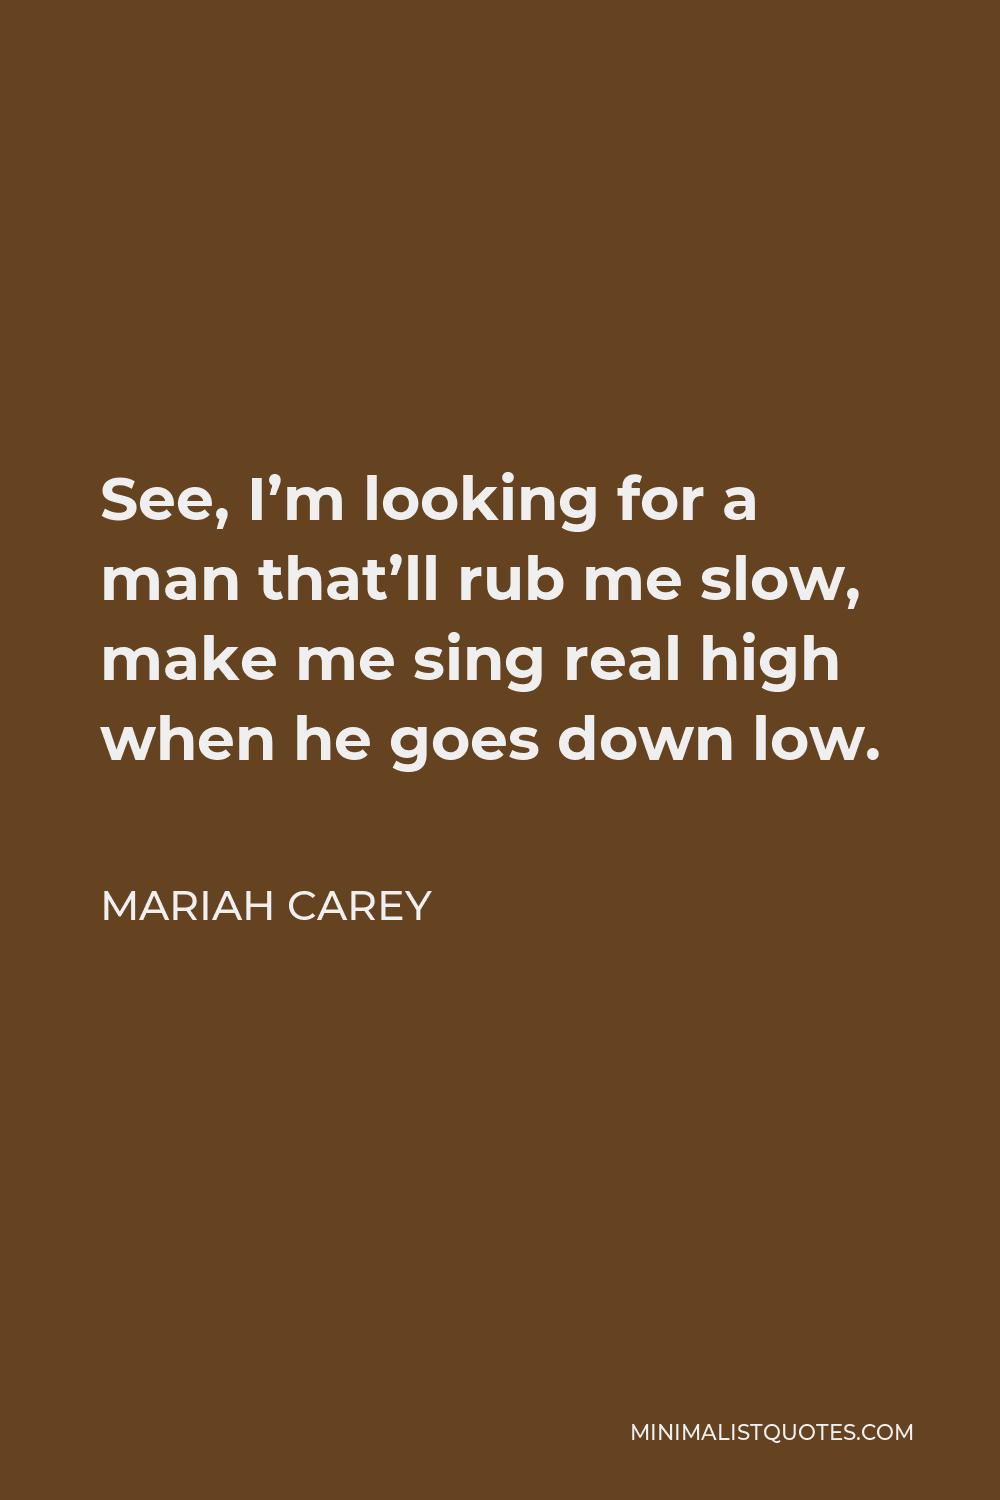 Mariah Carey Quote - See, I'm looking for a man that'll rub me slow, make me sing real high when he goes down low.